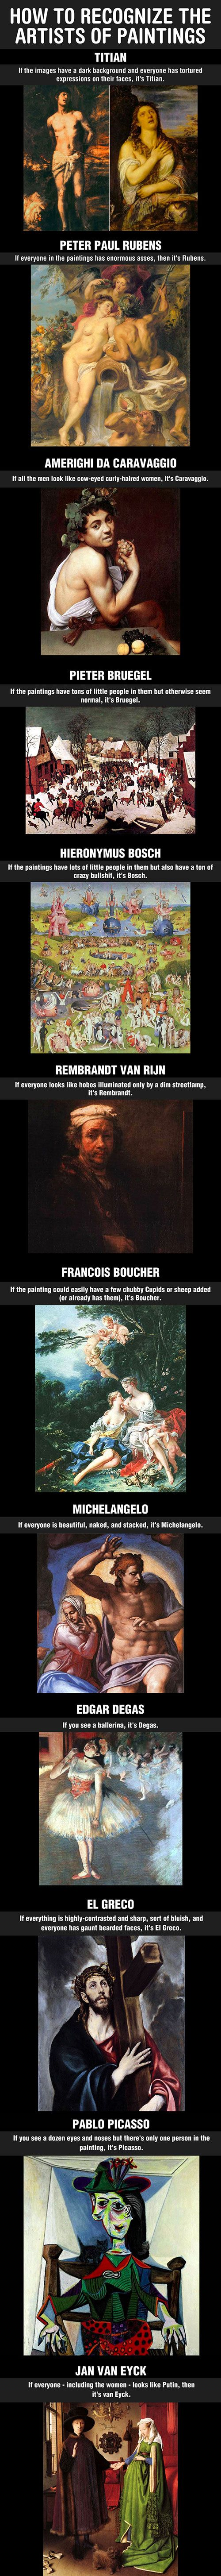 The best way to recognize the artists of paintings… I take AP Art History and this is actually really accurate